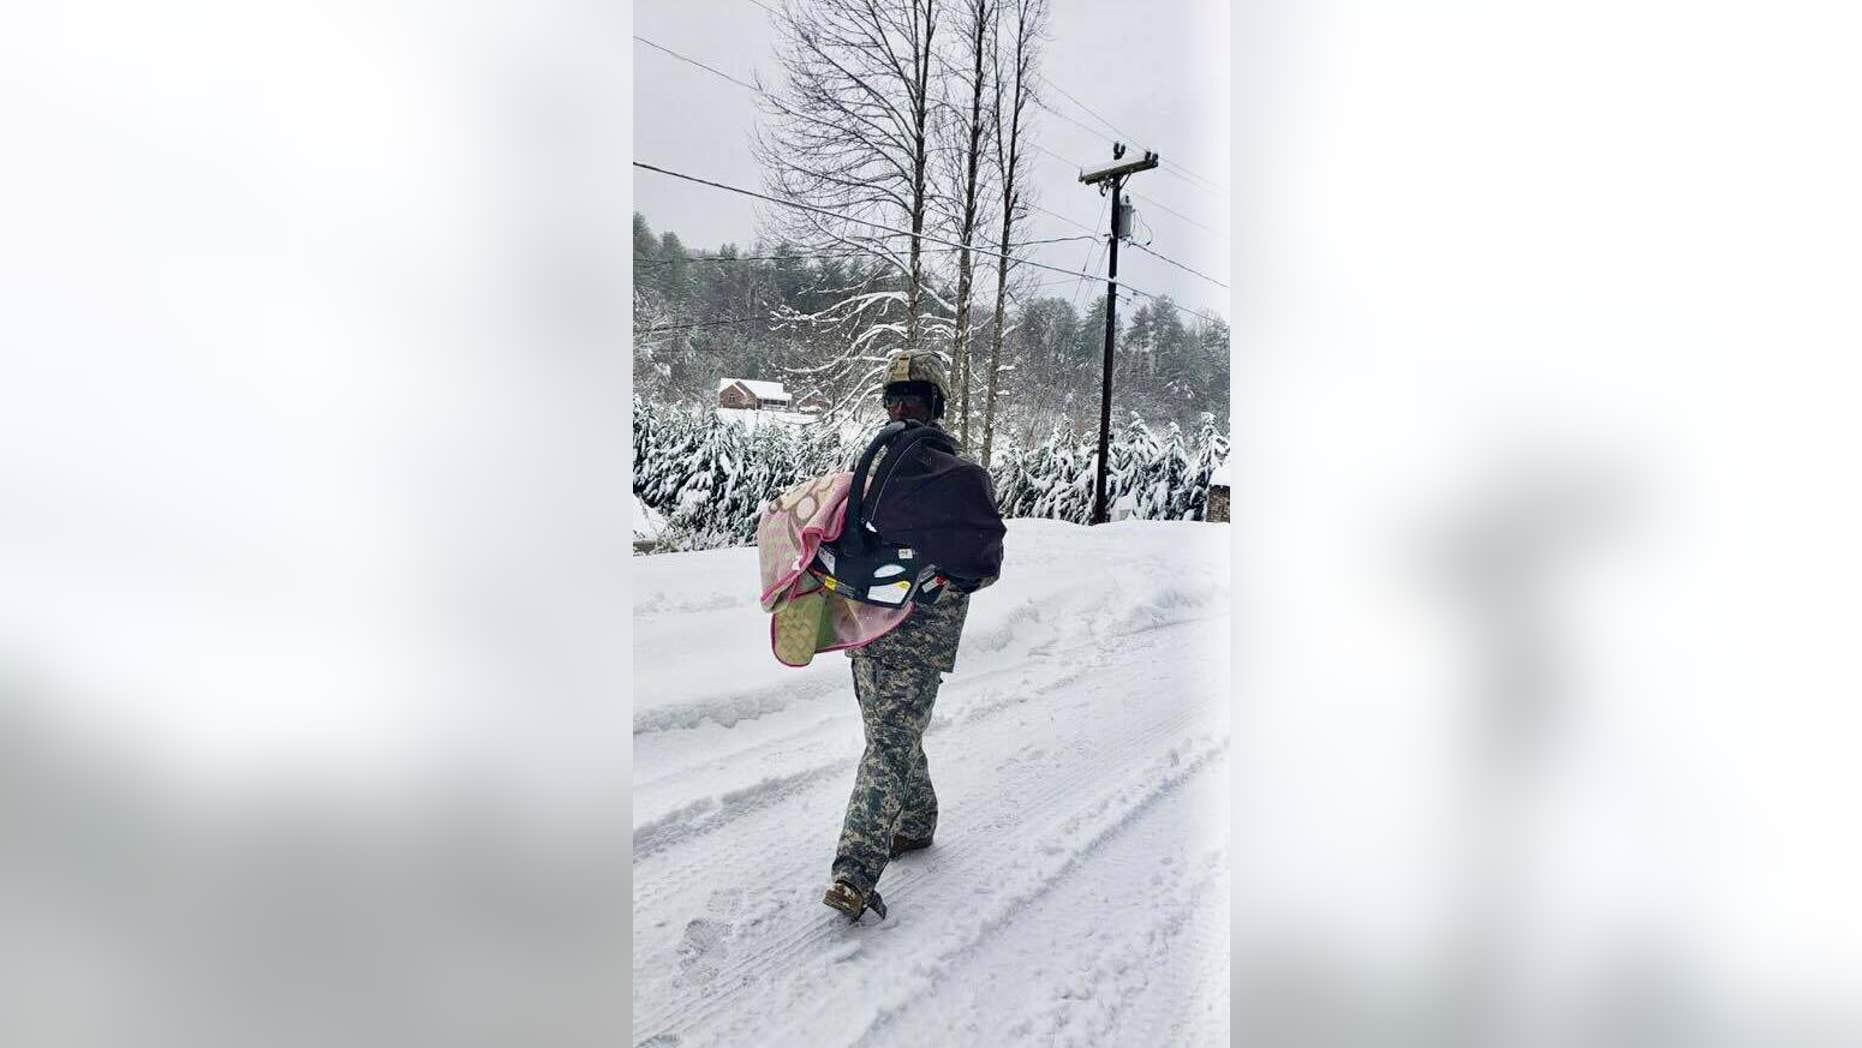 Sgt. Donovan McPherson, 27, was hailed a hero after he carried a baby in a car seat to safety.